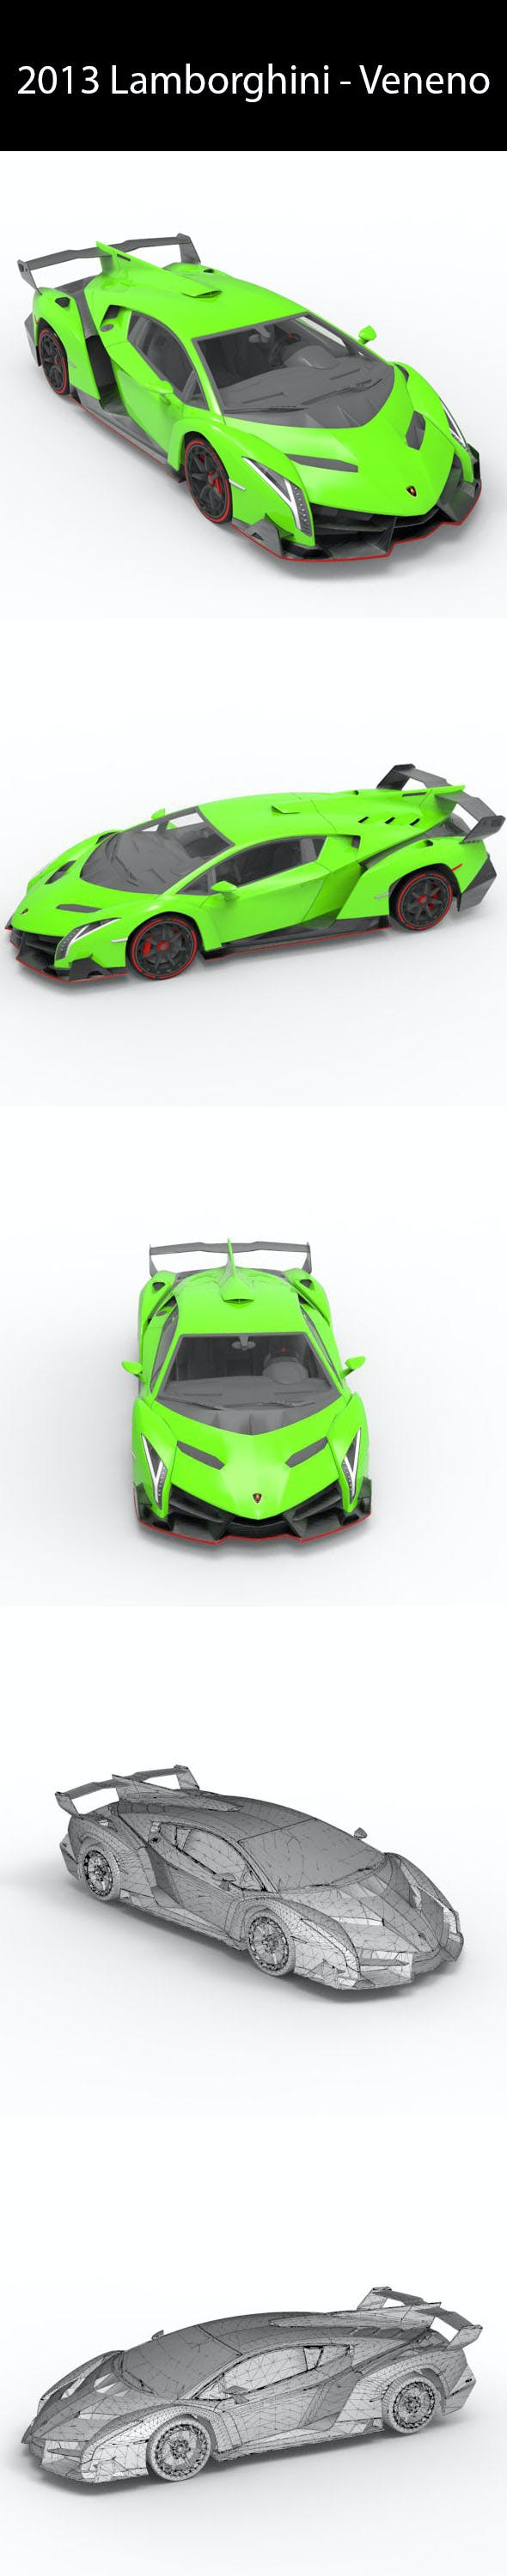 2013 Lamborghini - Veneno - 3DOcean Item for Sale